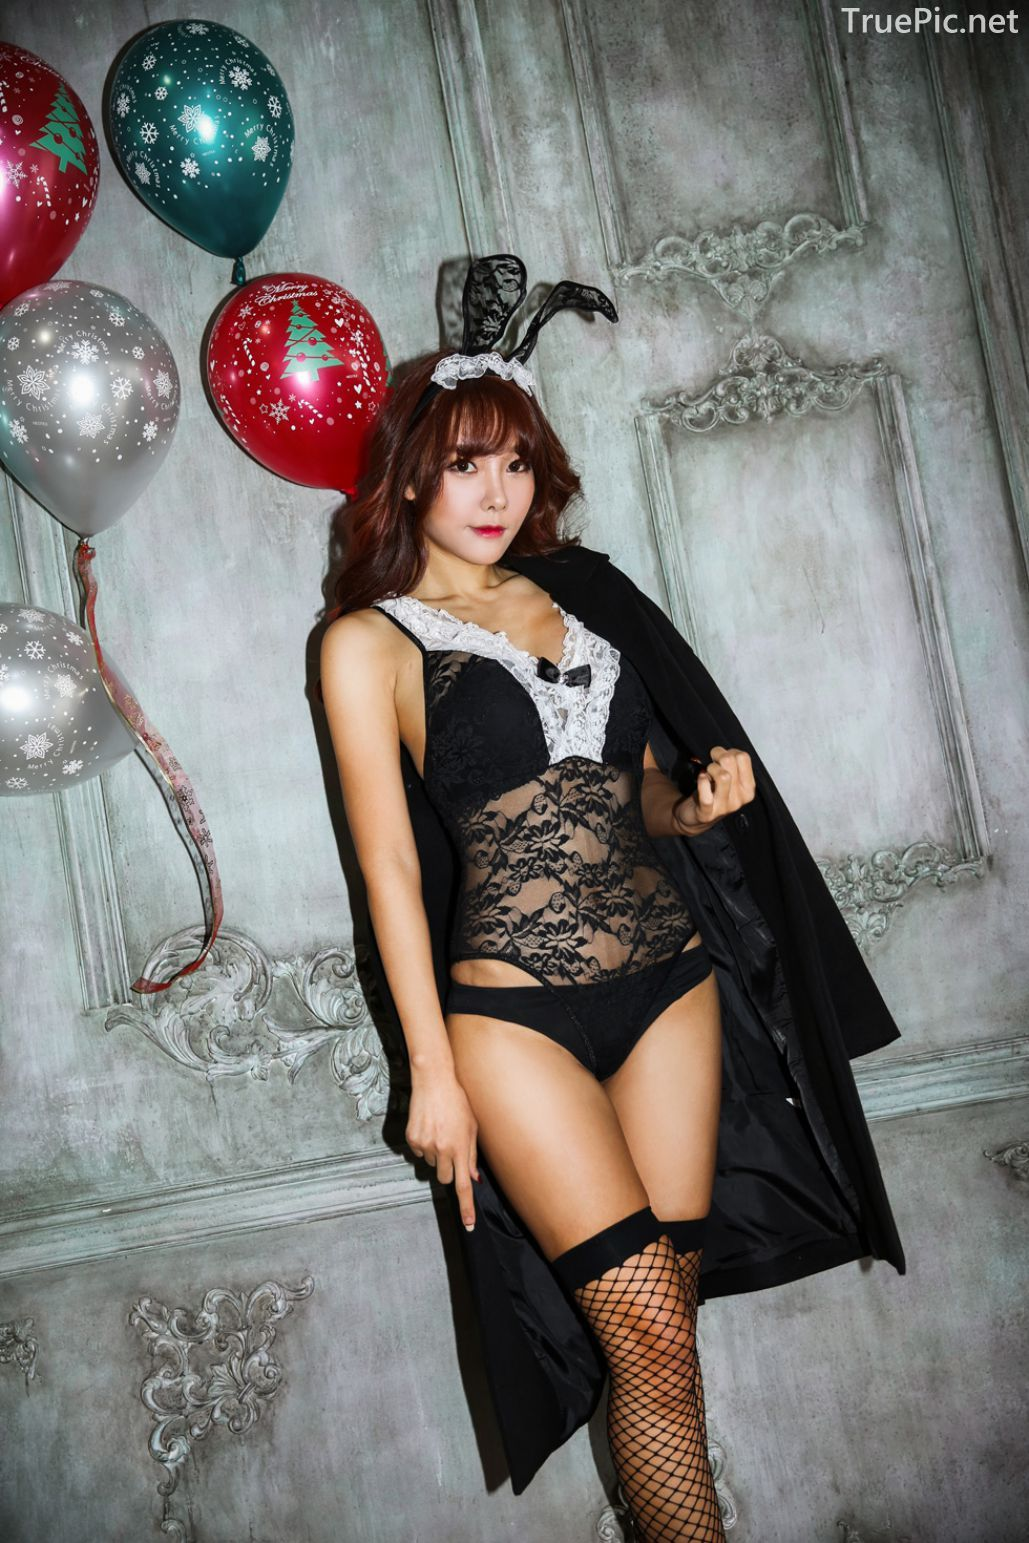 Korean-Lingerie-Fashion-Lee-Da-Hee-model-Tell-Me-What-You-Want-To-Do-TruePic.net- Picture 8